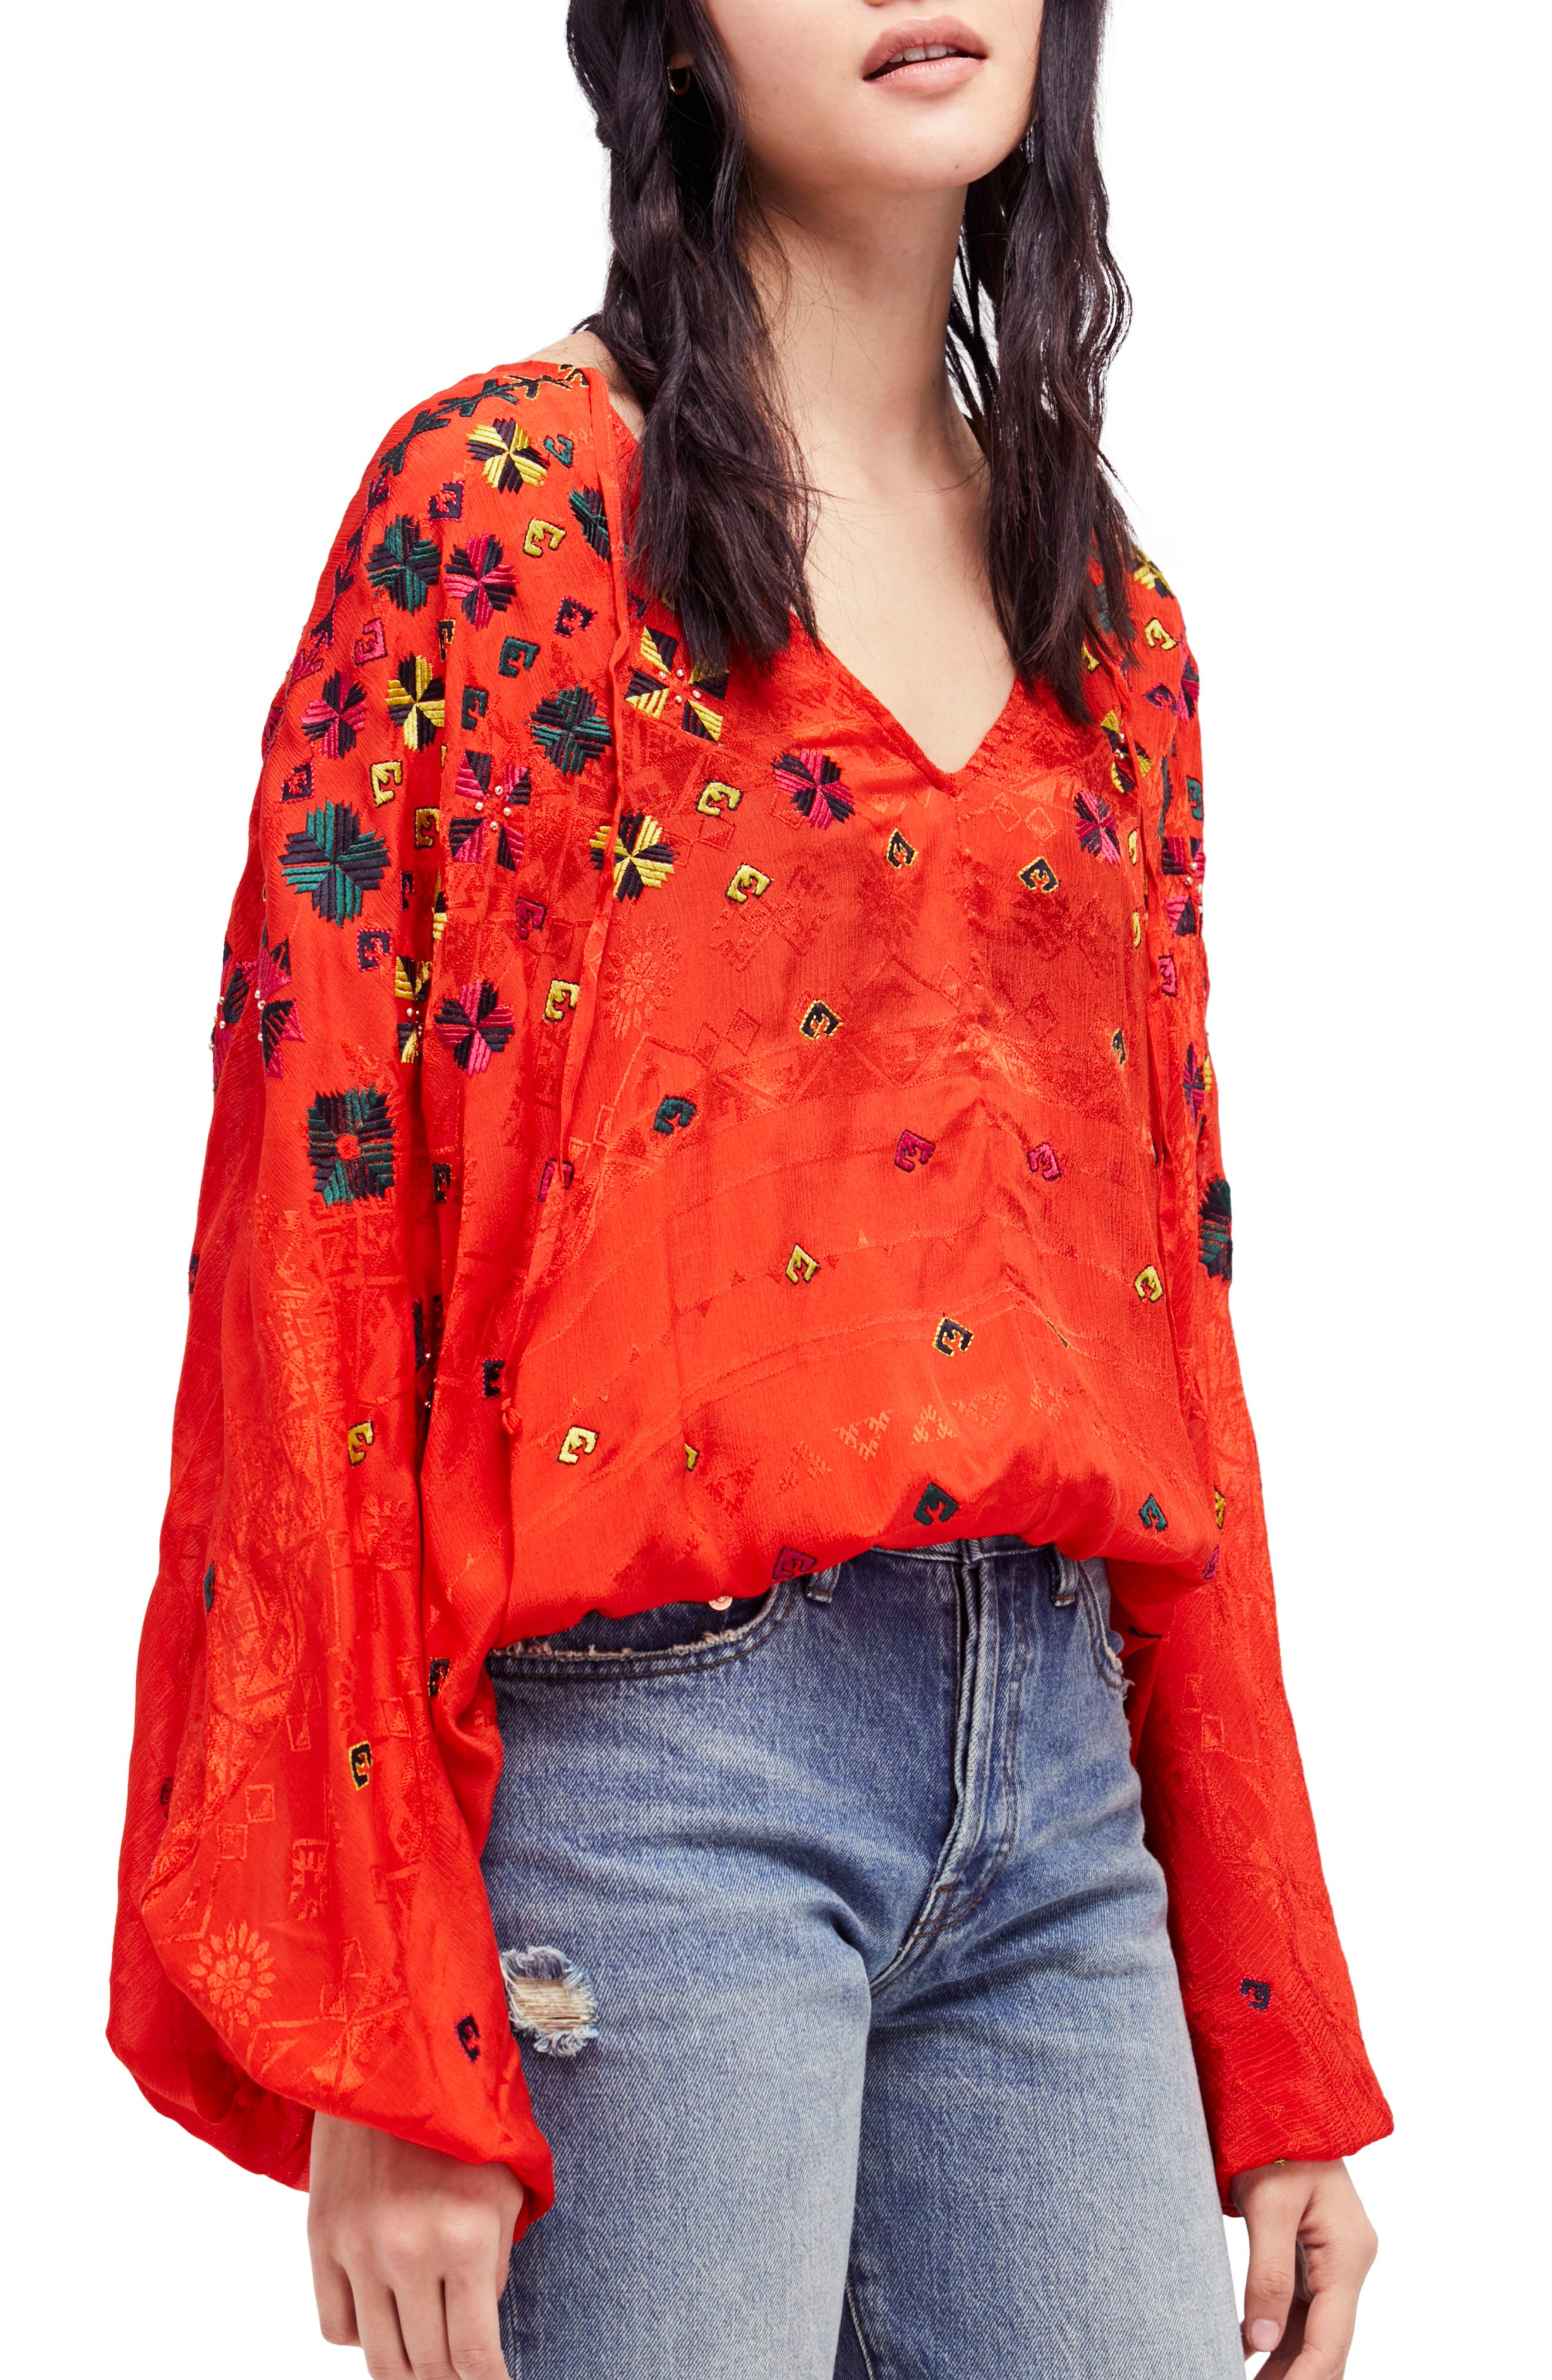 Free People Music in Time Embroidered Top